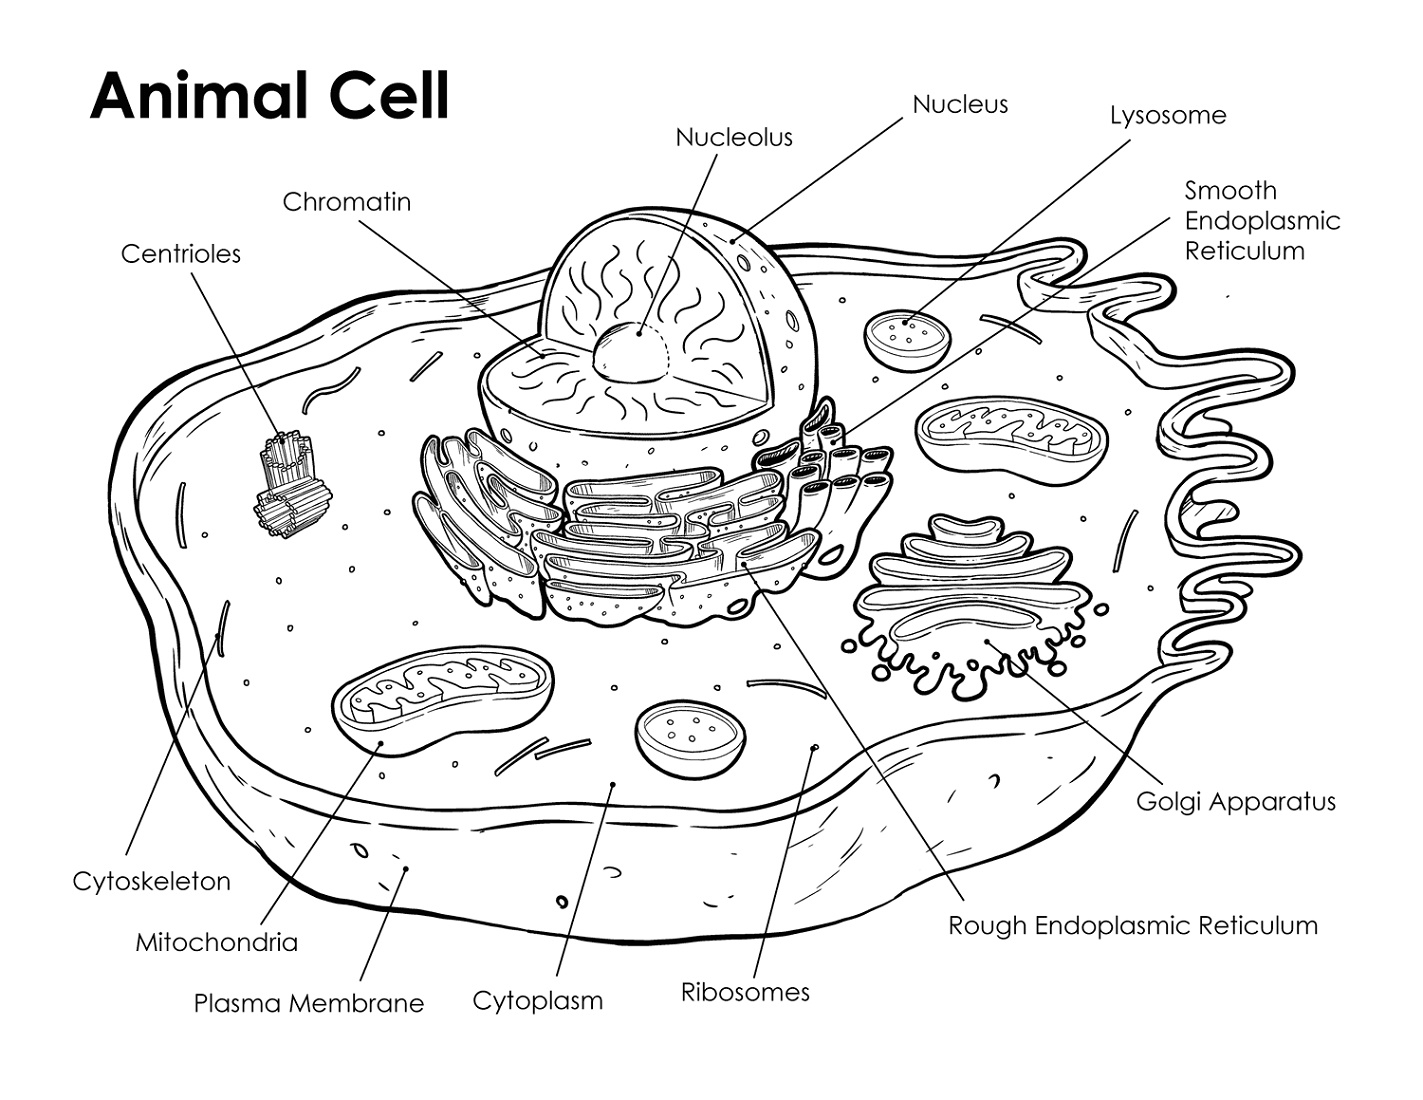 Animal Cell Coloring Key Labeled